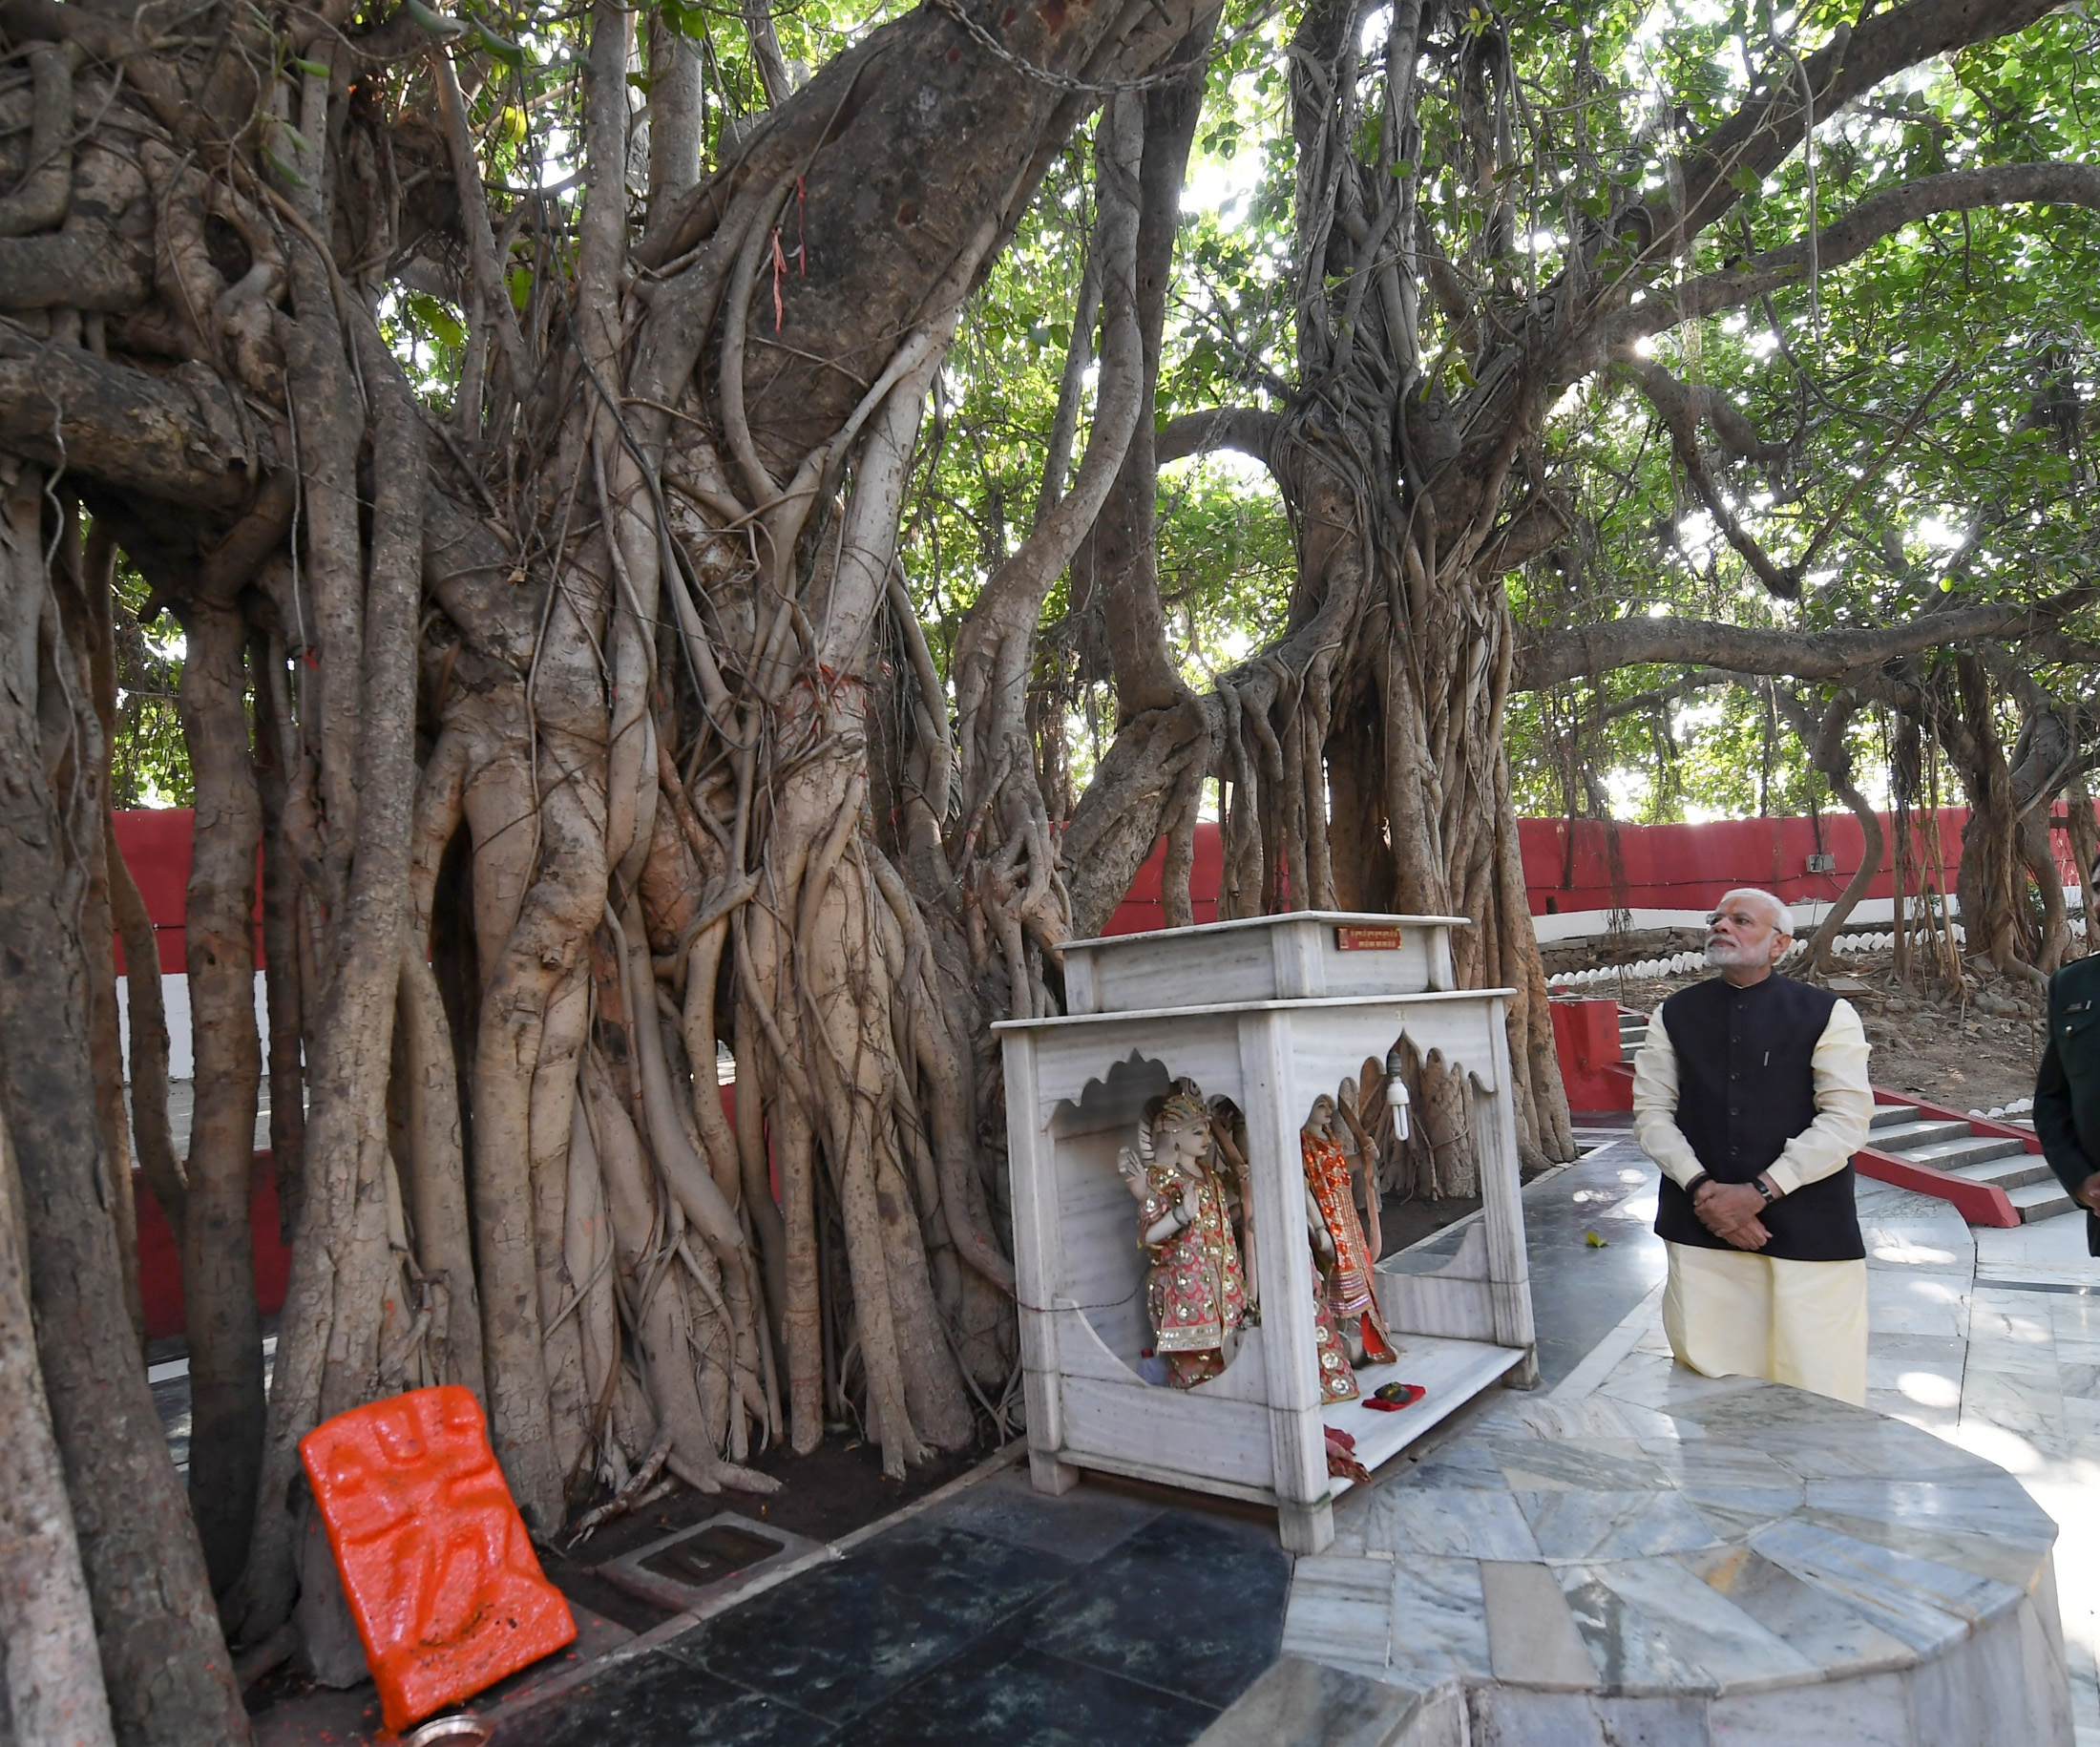 Prime Minister Narendra Modi admiring an ancient tree at Akshayvat, at Prayagraj, in Uttar Pradesh.  (Photo courtesy: PMO